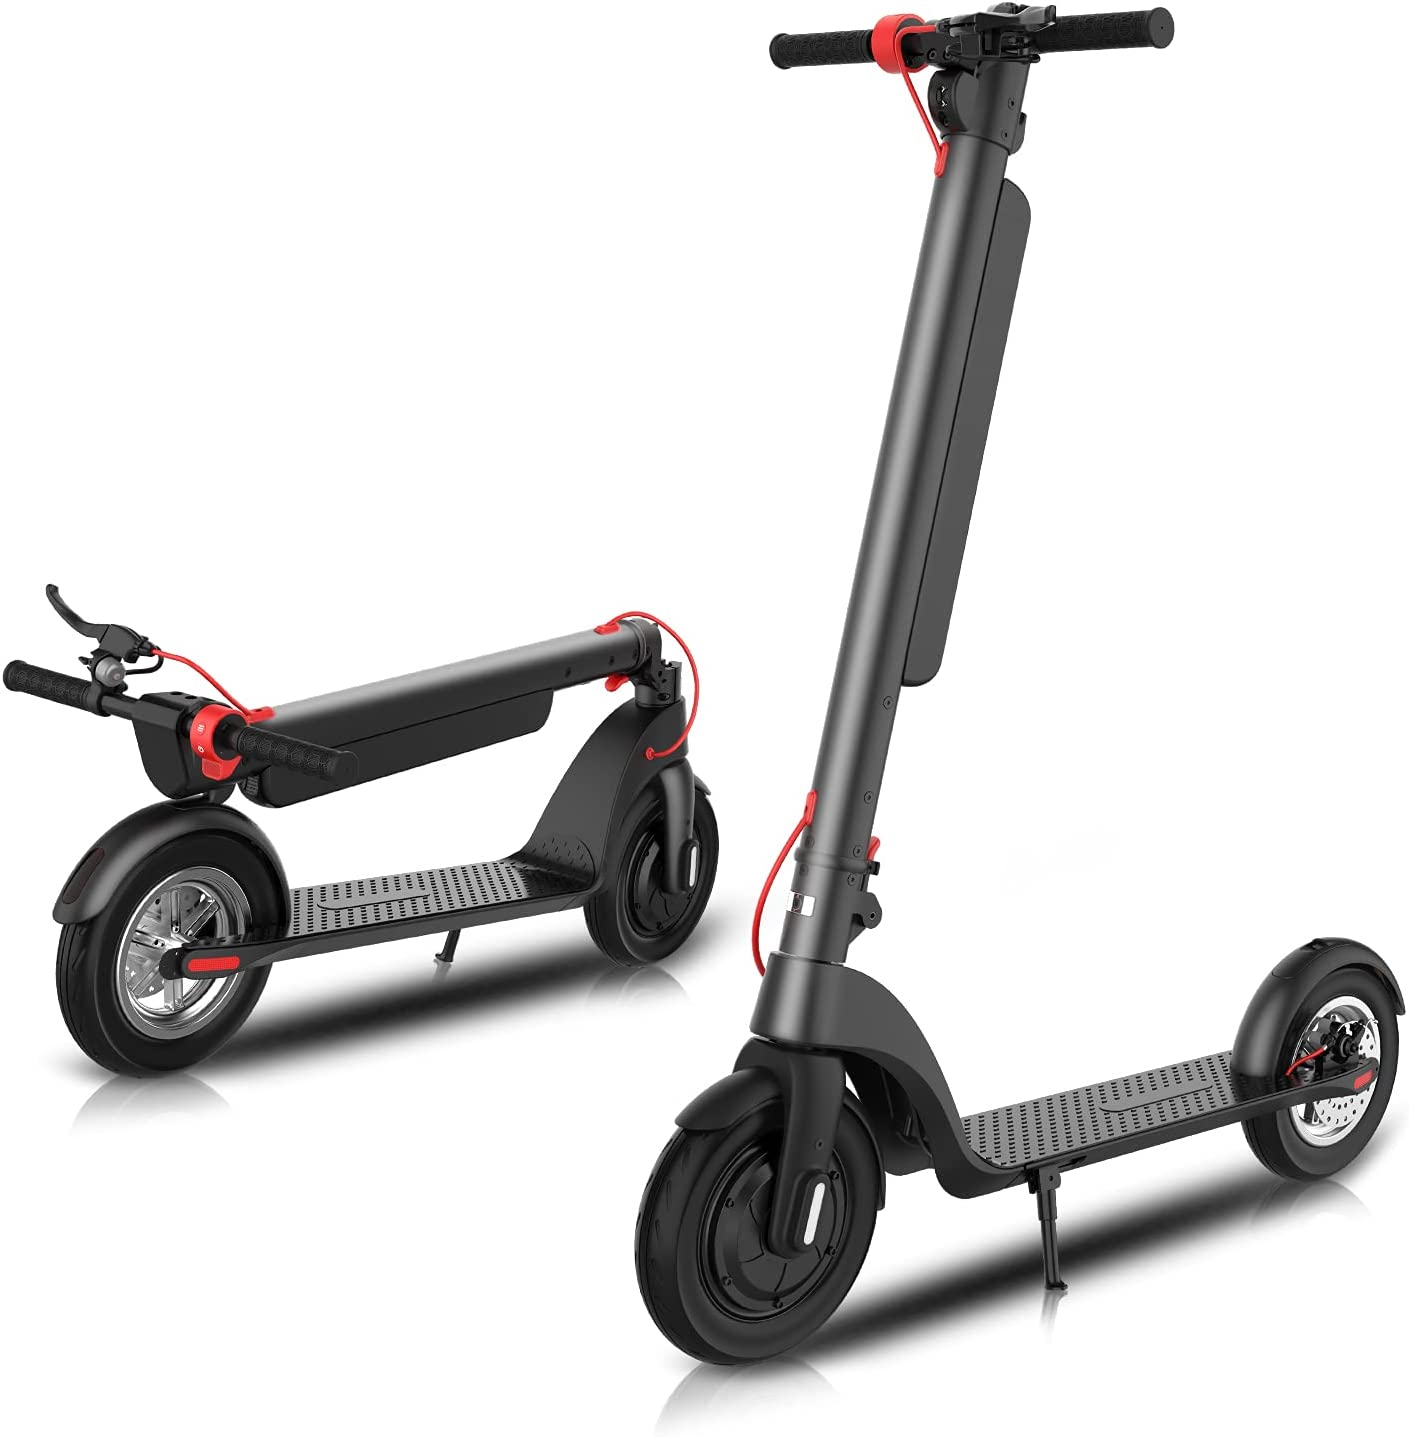 2020A/W新作送料無料 Electric Scooter for Adults Load Over lbs Scoo 10in Tire Fat 300 ギフト プレゼント ご褒美